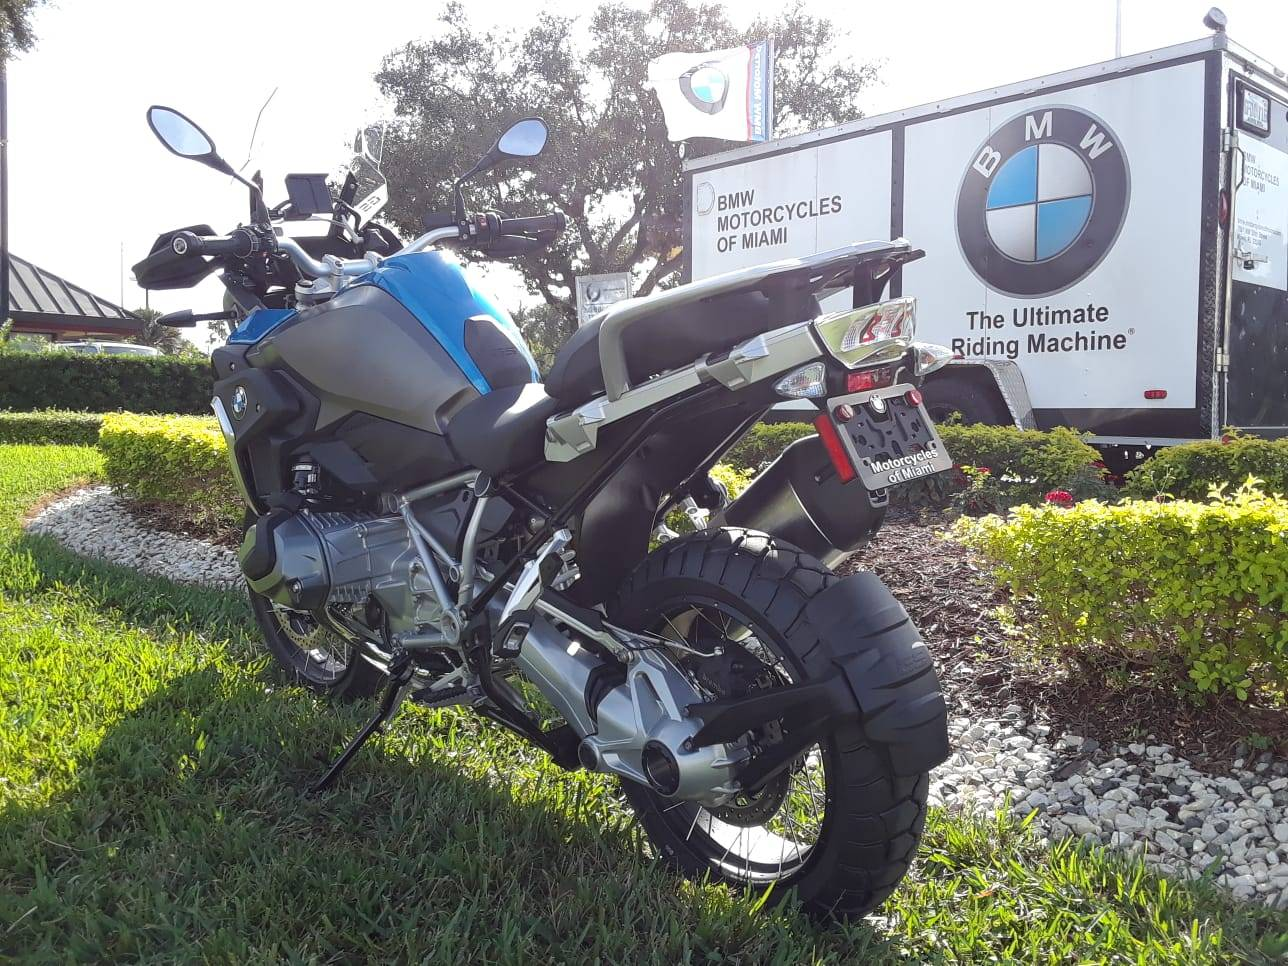 New 2019 BMW R 1250 GS for sale, New BMW R 1250GS, BMW R1250GS for sale, 1250GS, R1250GS, BMW Motorcycles of Miami, Motorcycles of Miami. Motorcycles Miami - Photo 12